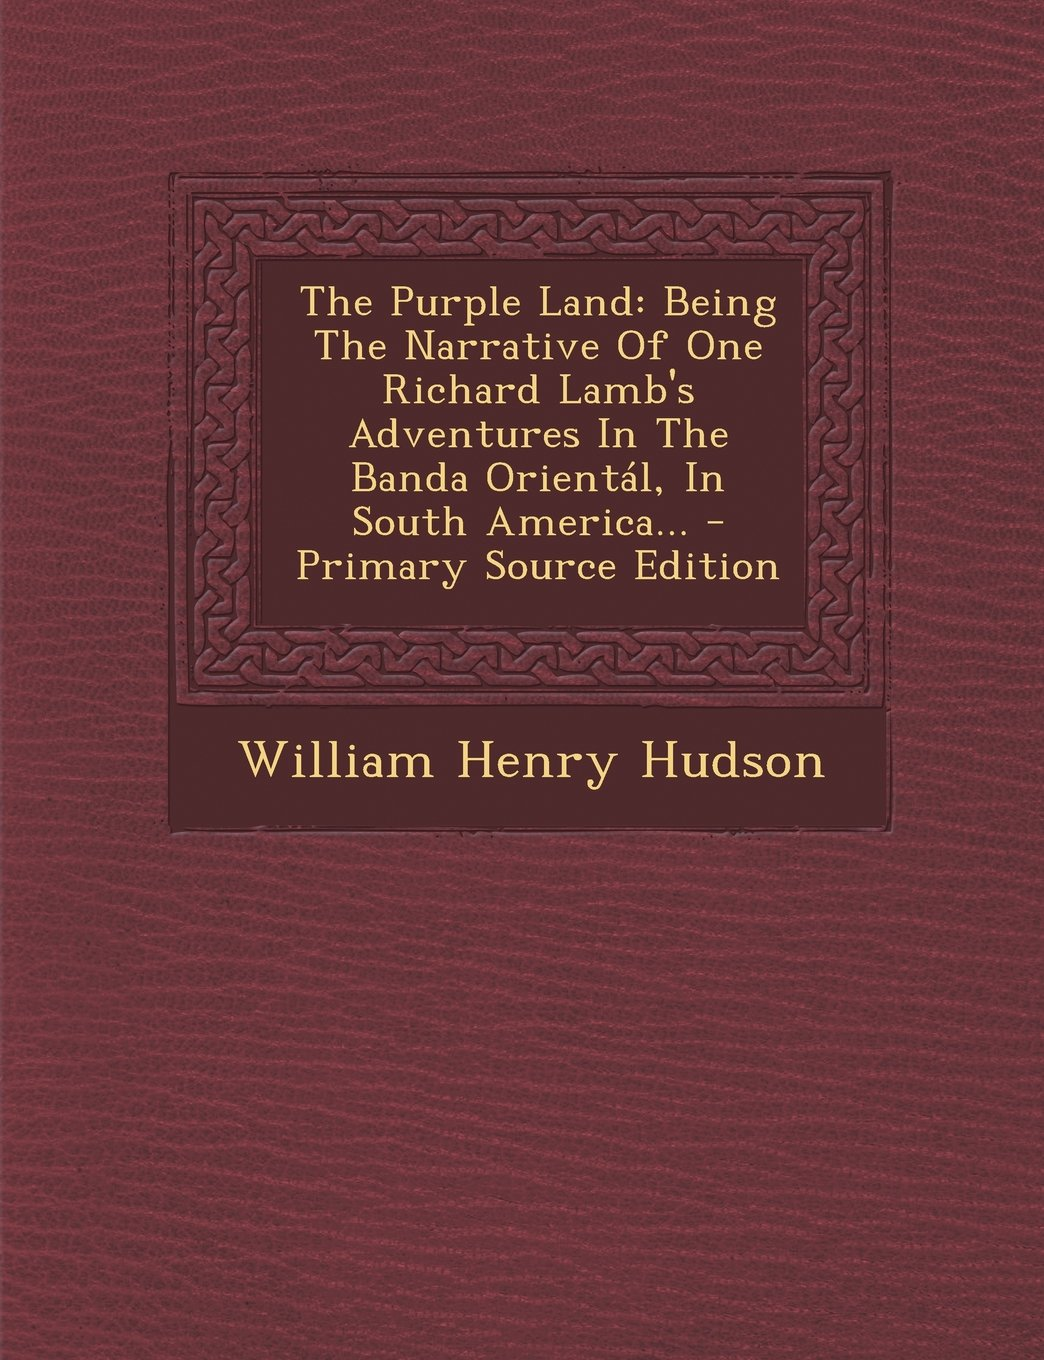 Read Online The Purple Land: Being the Narrative of One Richard Lamb's Adventures in the Banda Oriental, in South America... - Primary Source Editi ebook